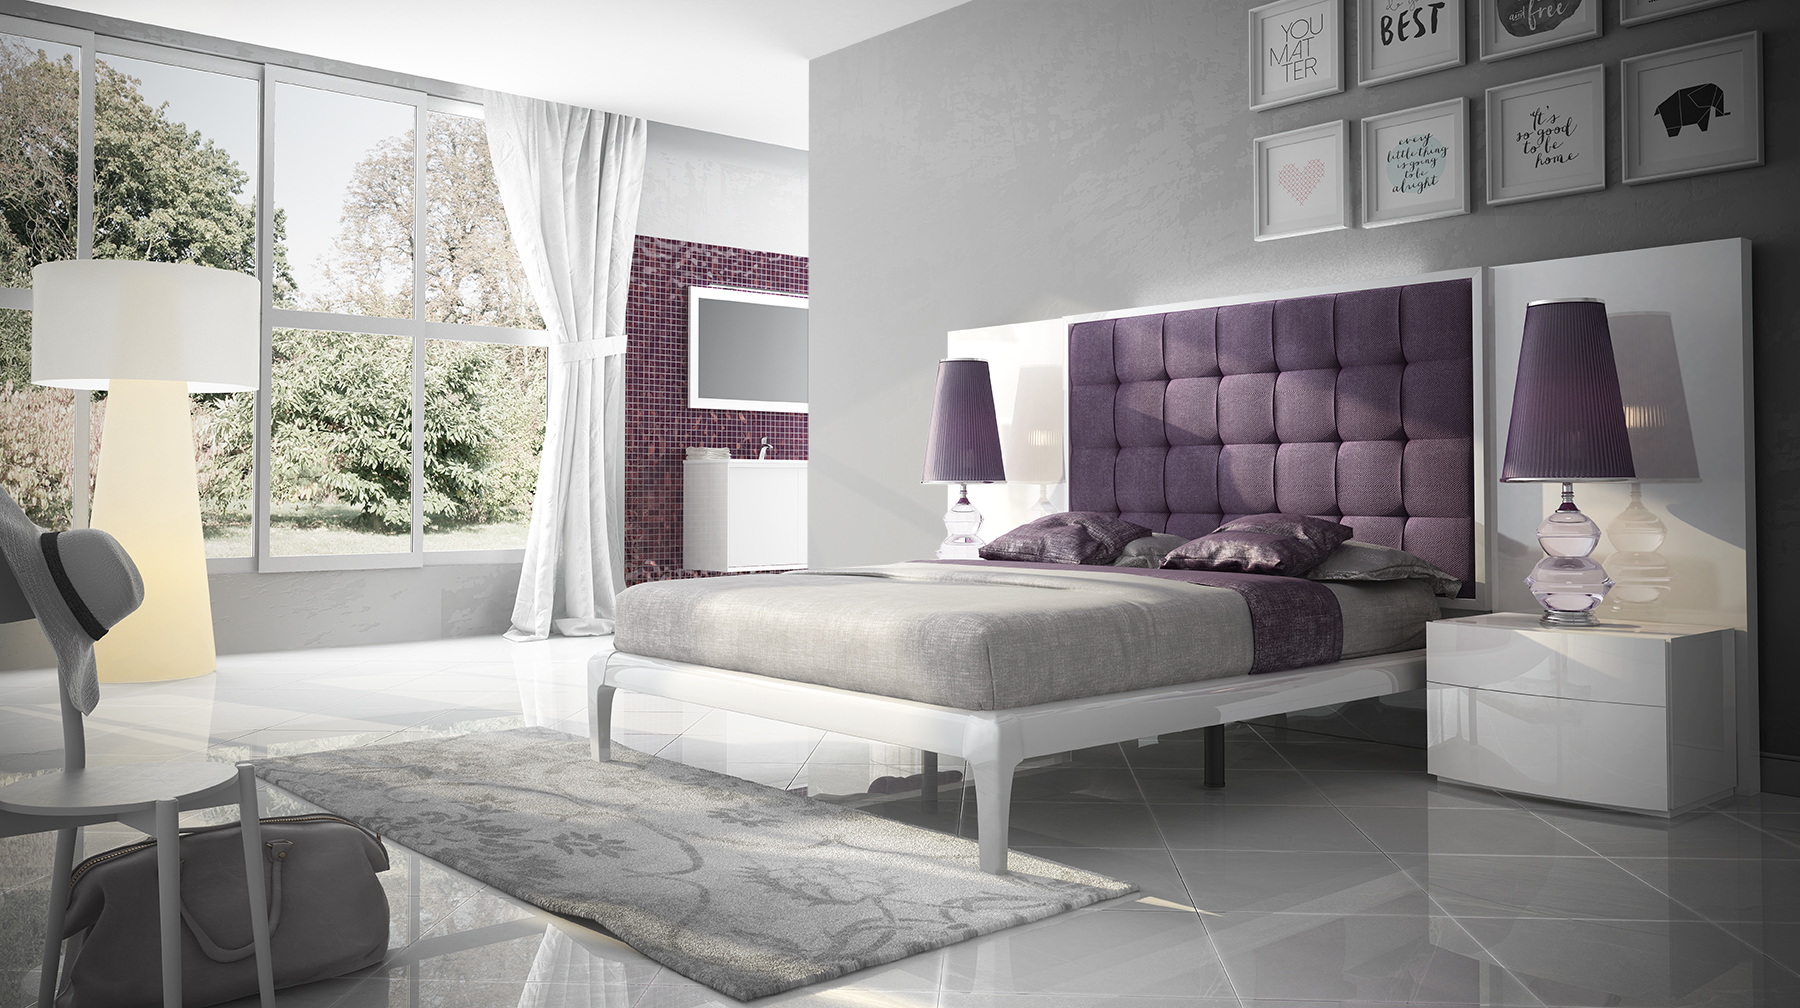 Image result for deluxe finishes with a lacquer lamp in the bedroom